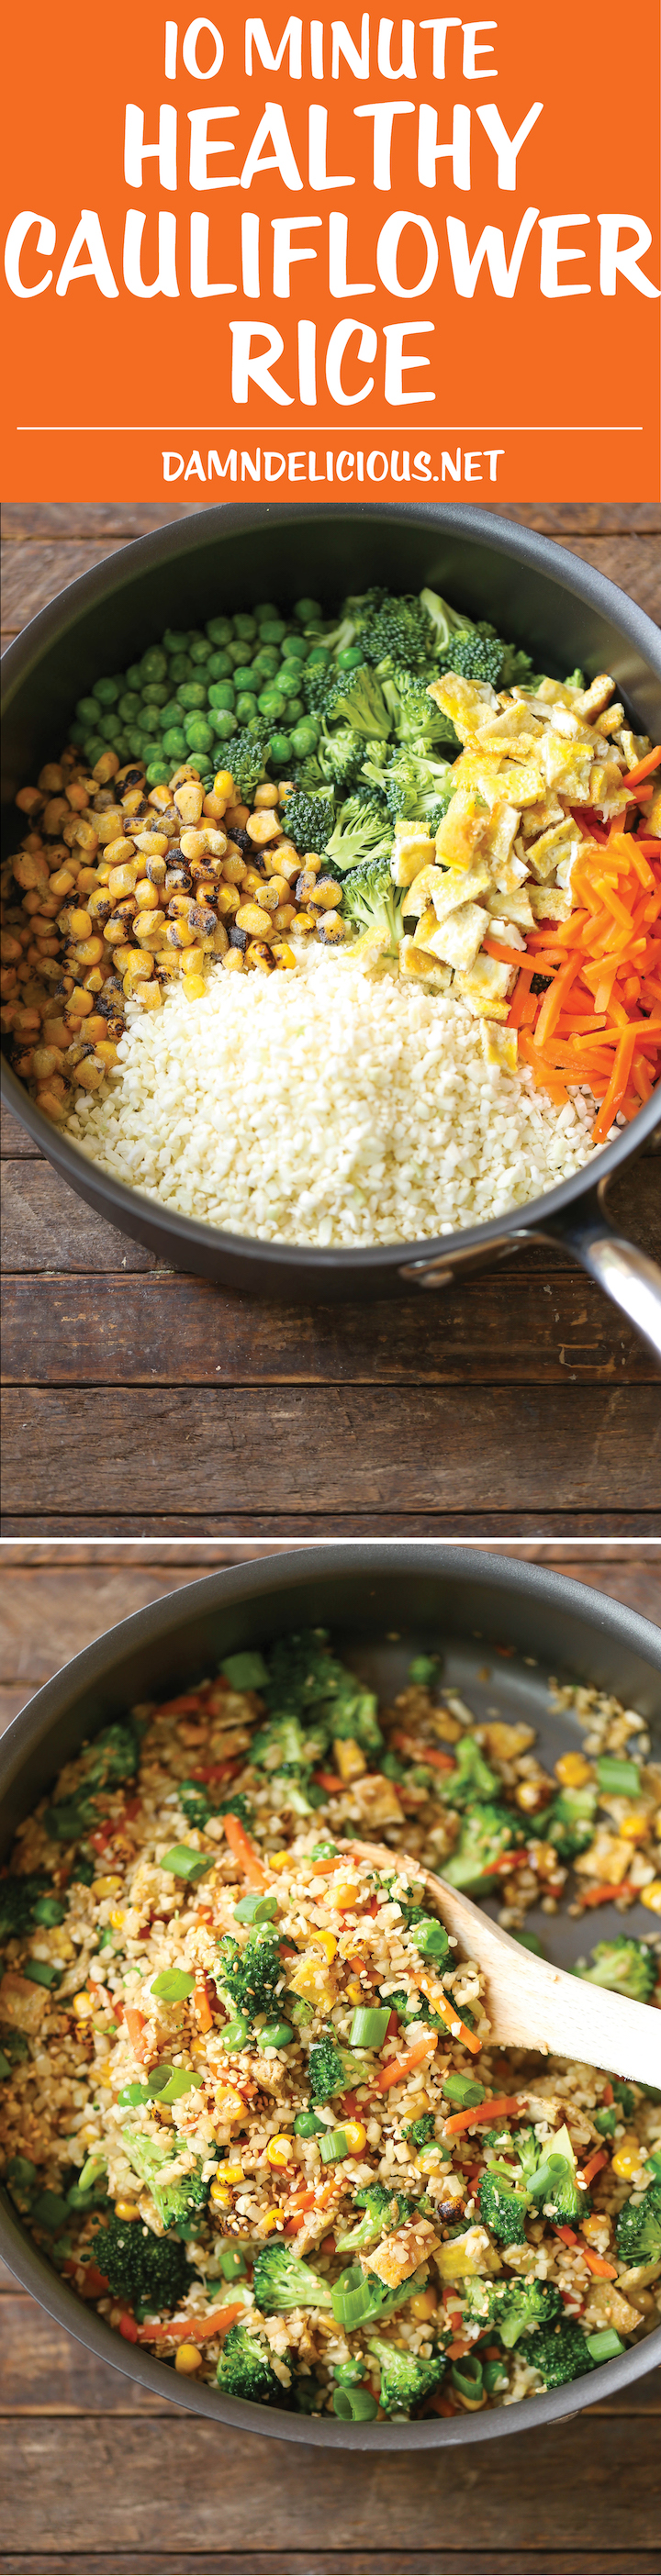 10 minute healthy cauliflower rice damn delicious 10 minute healthy cauliflower rice an amazingly healthy twist on takeout fried rice but you forumfinder Choice Image